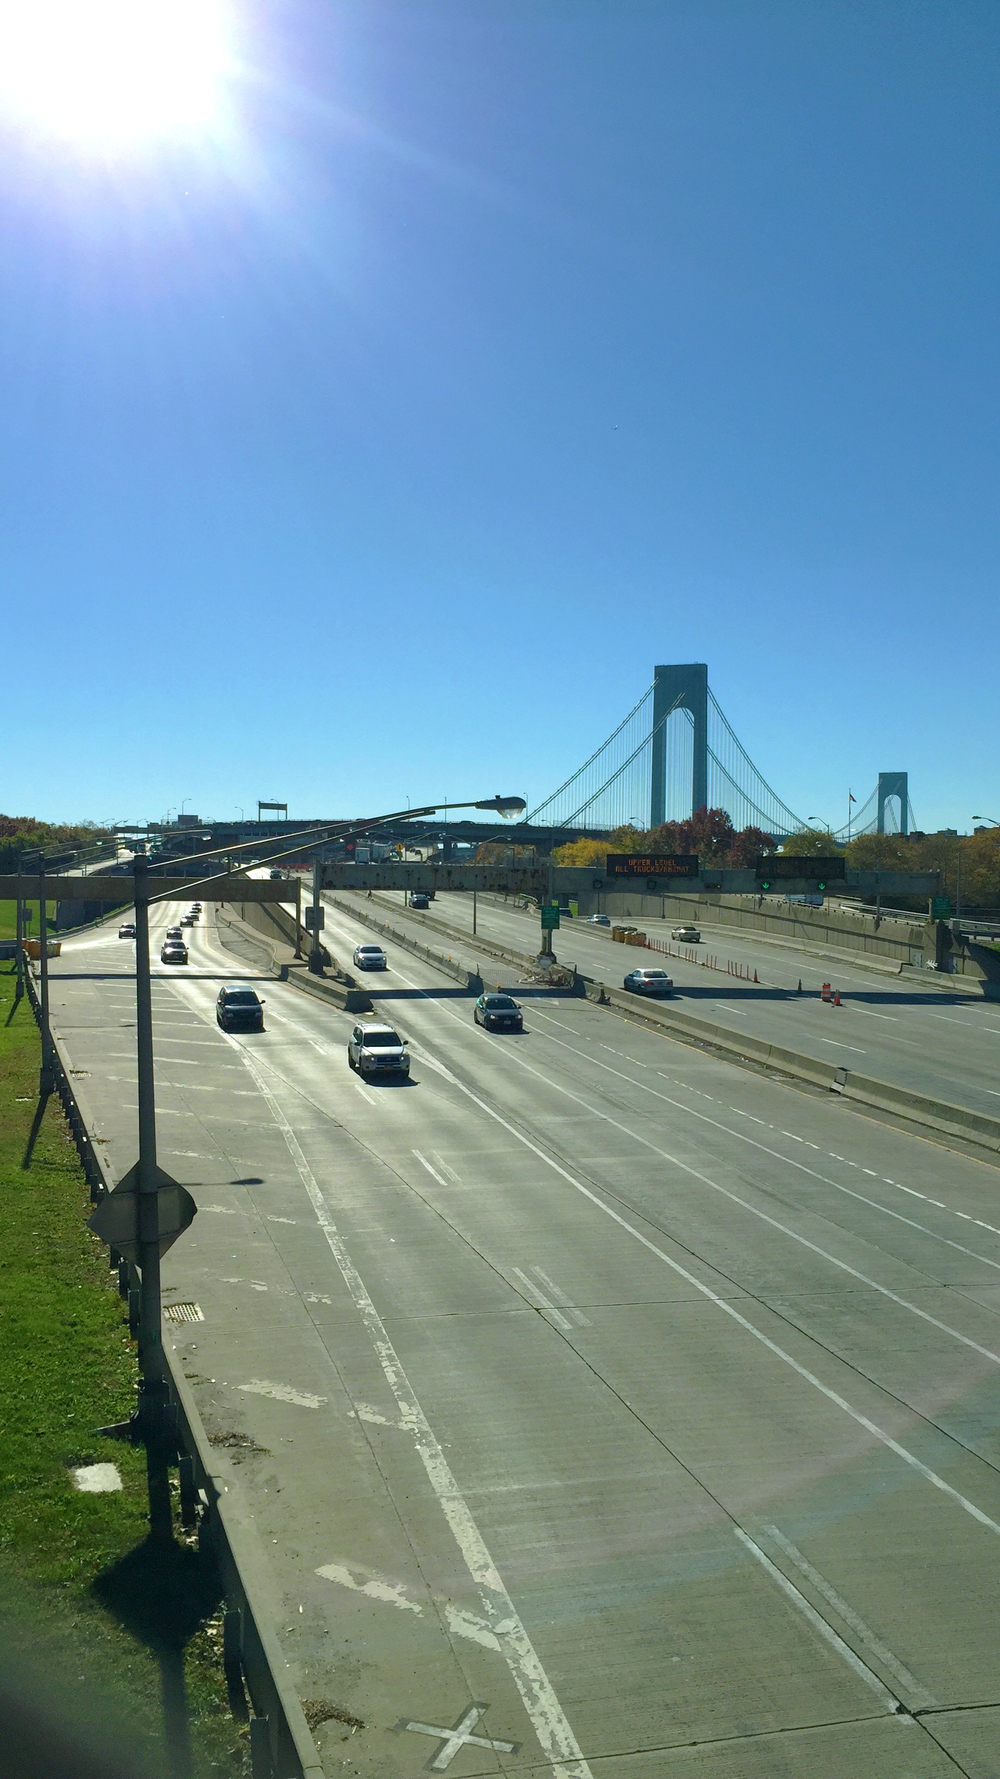 Looking towards the Verrazano Bridge from 92nd street in Bay Ridge - November 3, 2015